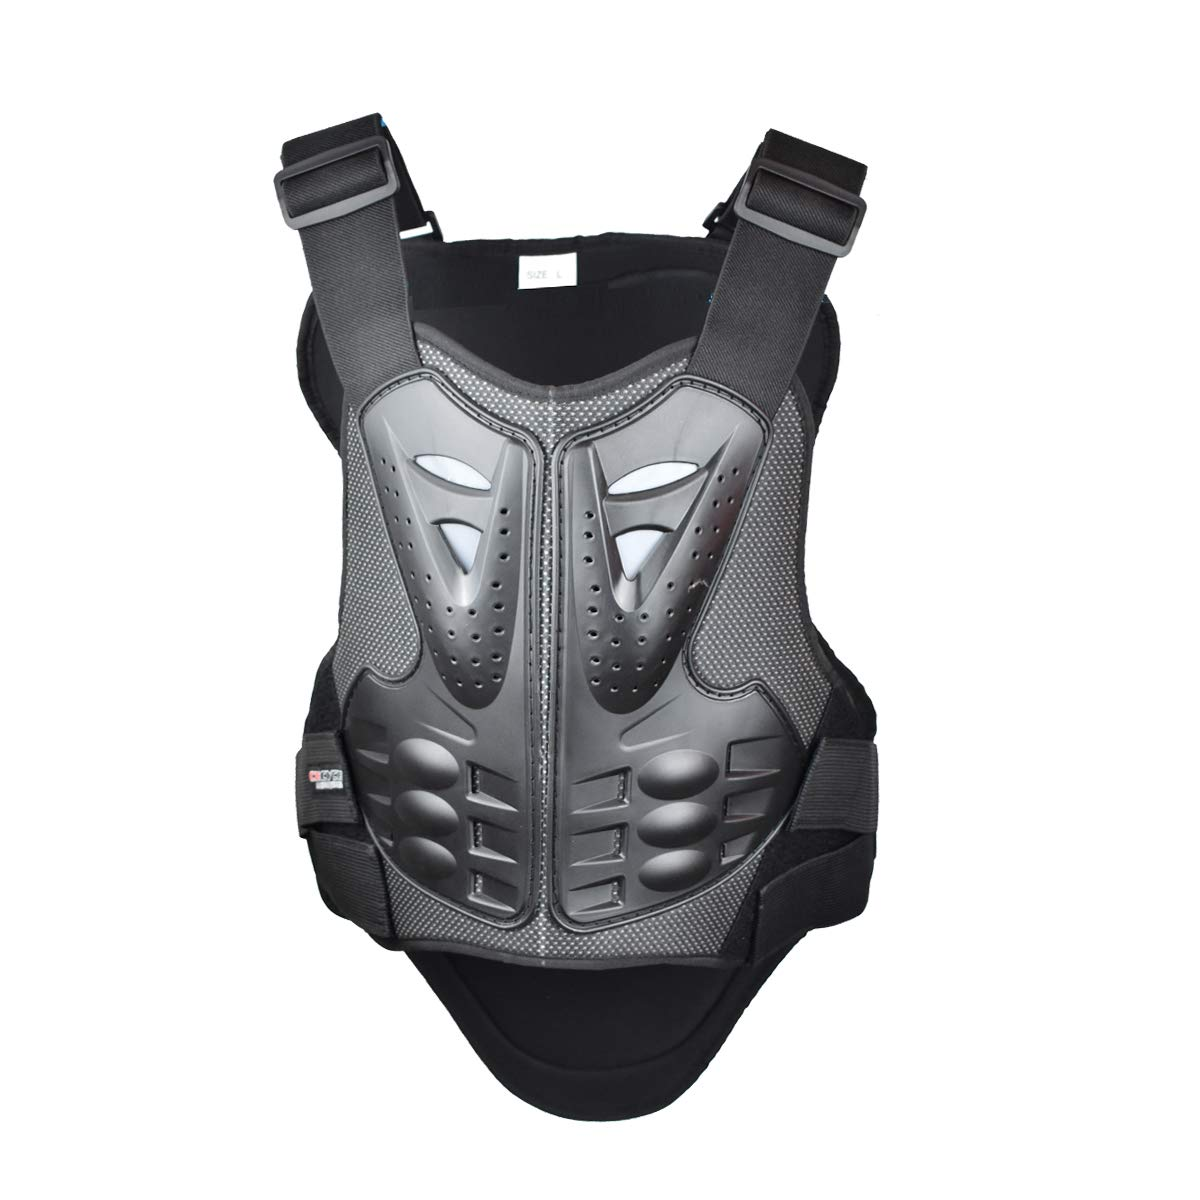 Madbike Vest Armor Motorcycle Protector for Chest and Back Protection XX-Large